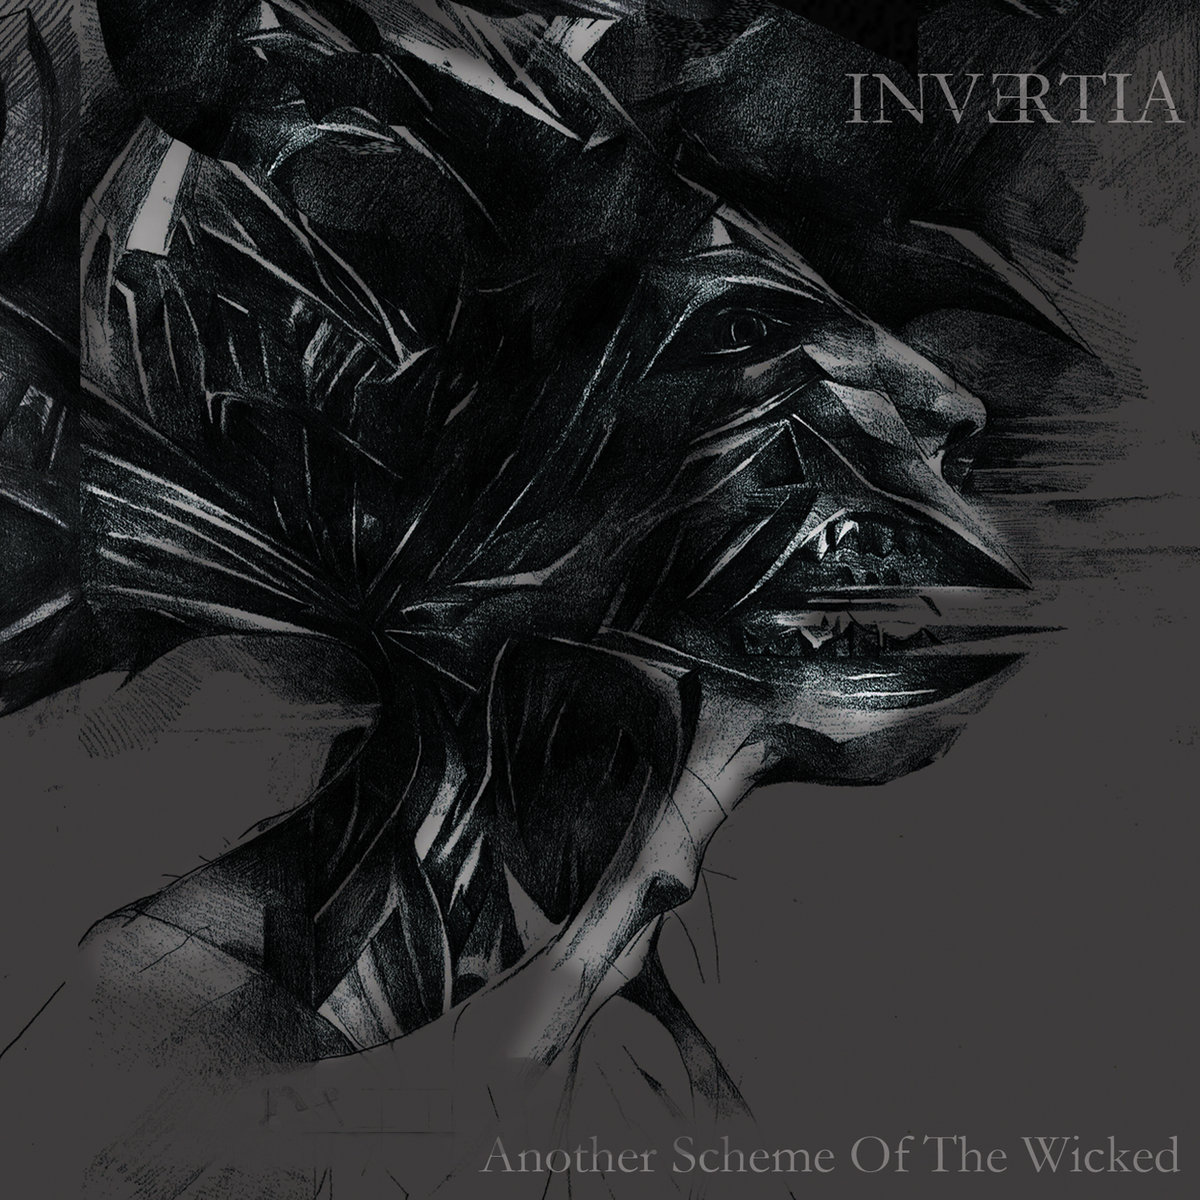 Invertia - Another Scheme of the Wicked (2014)